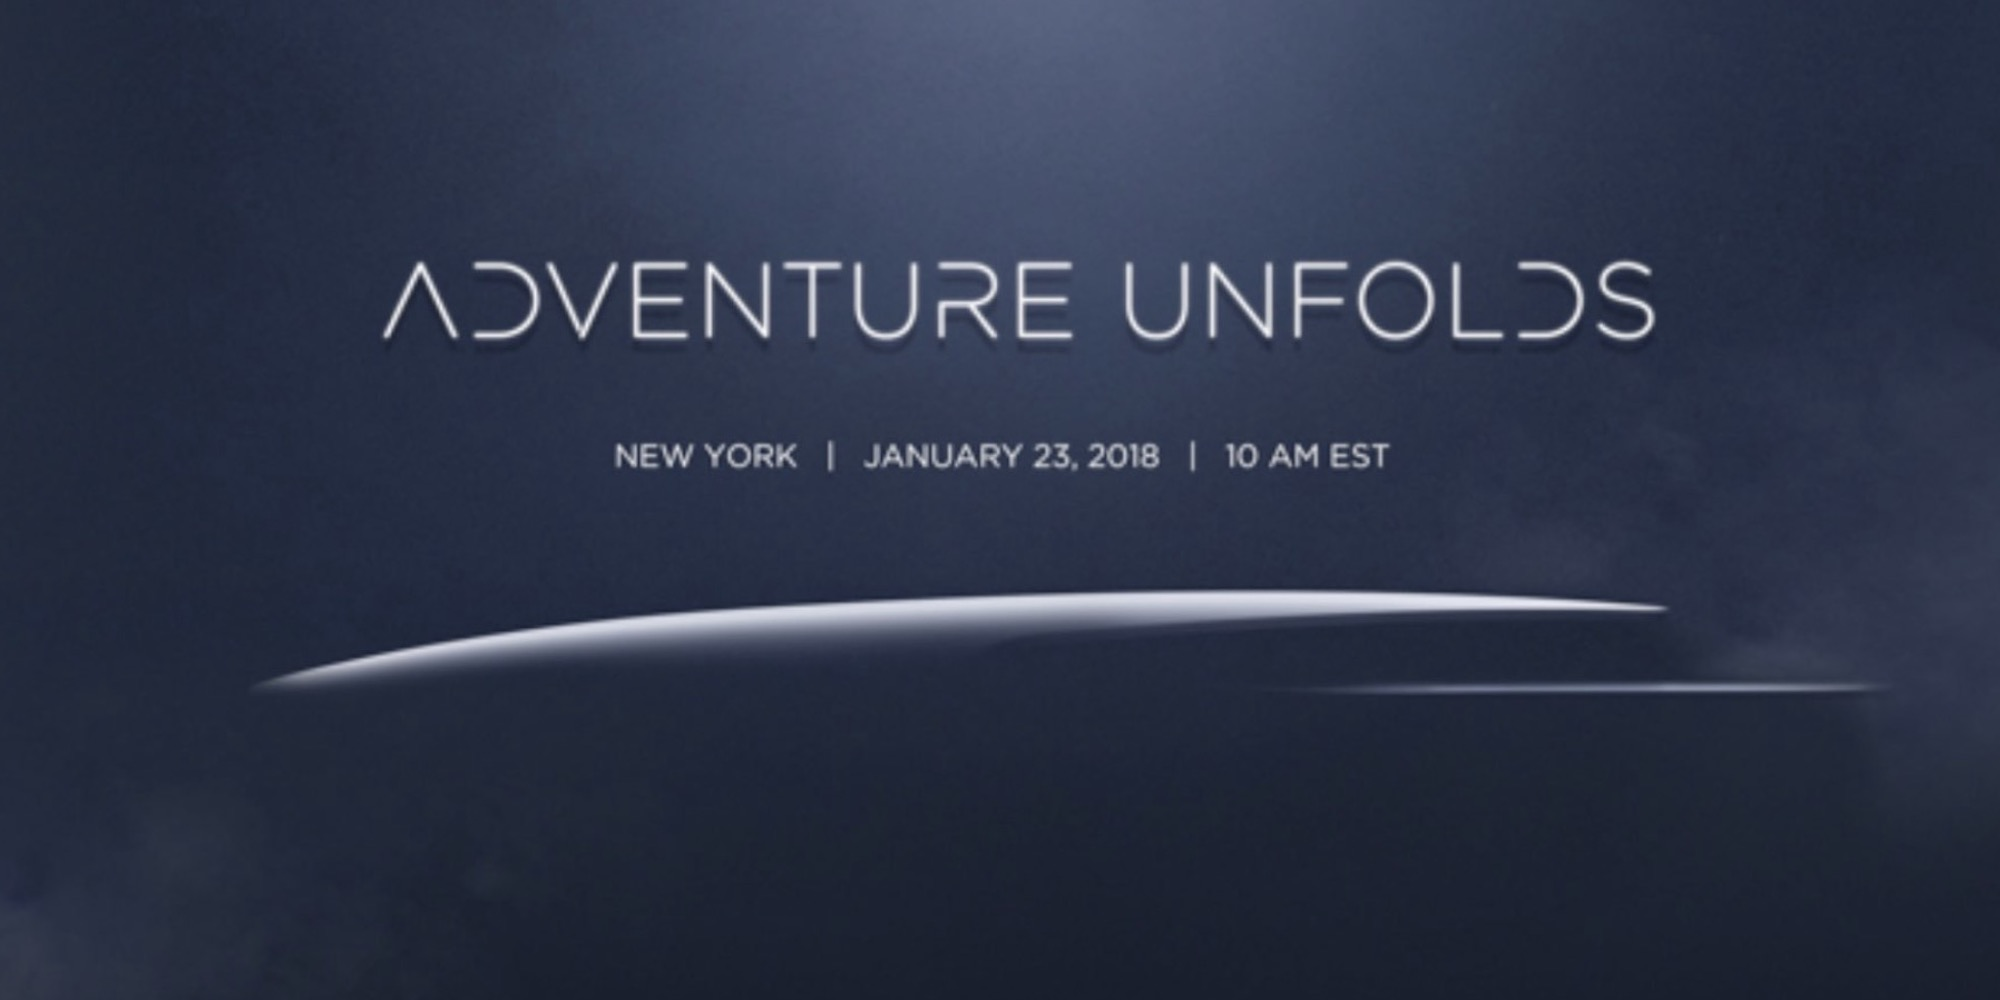 DJI to hold event in New York City to announce new drones on